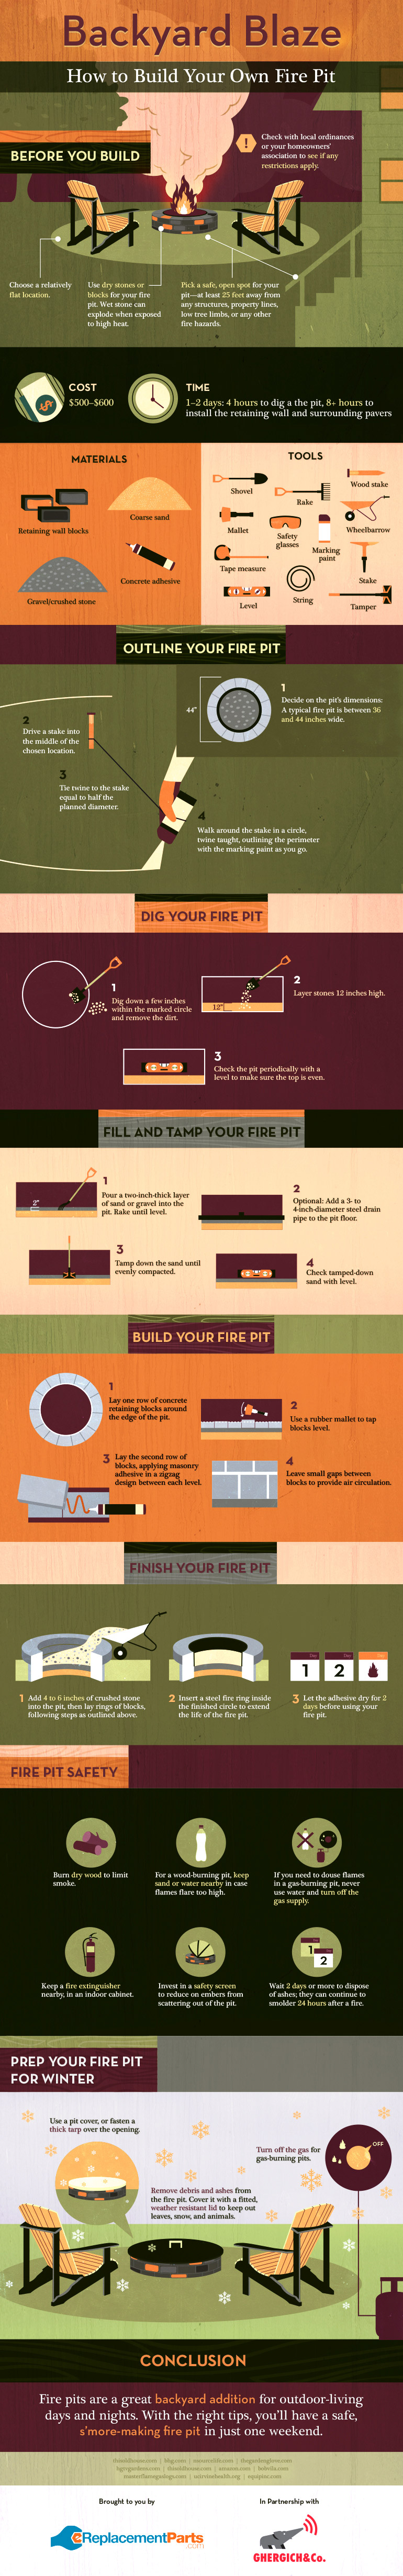 how to build your own fire pit in your backyard - diy weekend